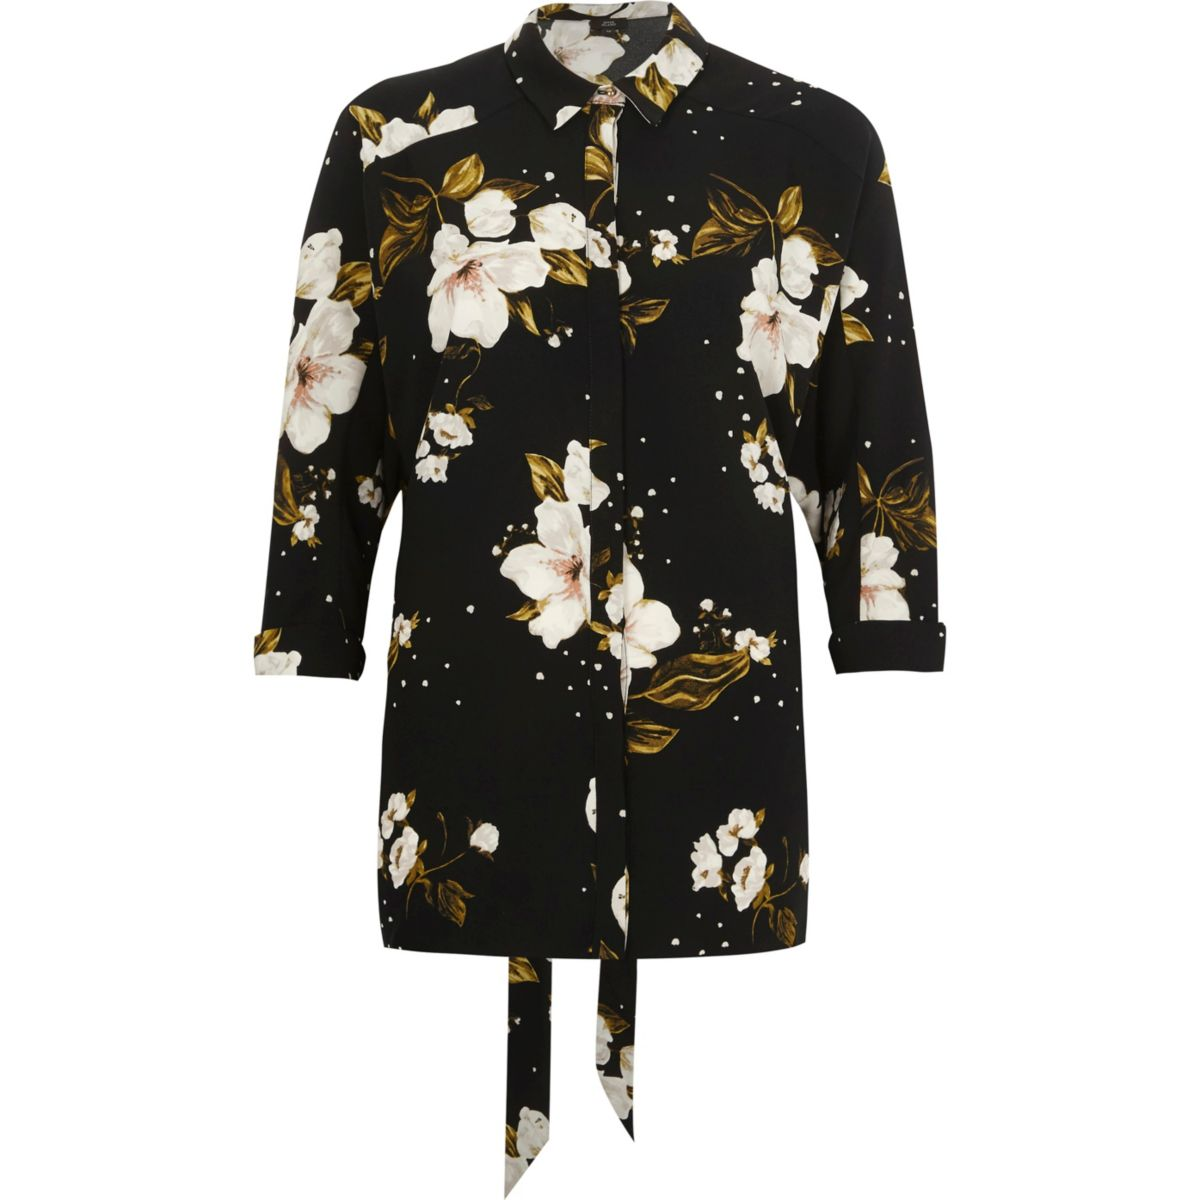 Black floral print oversized shirt shirts tops women for Black floral print shirt